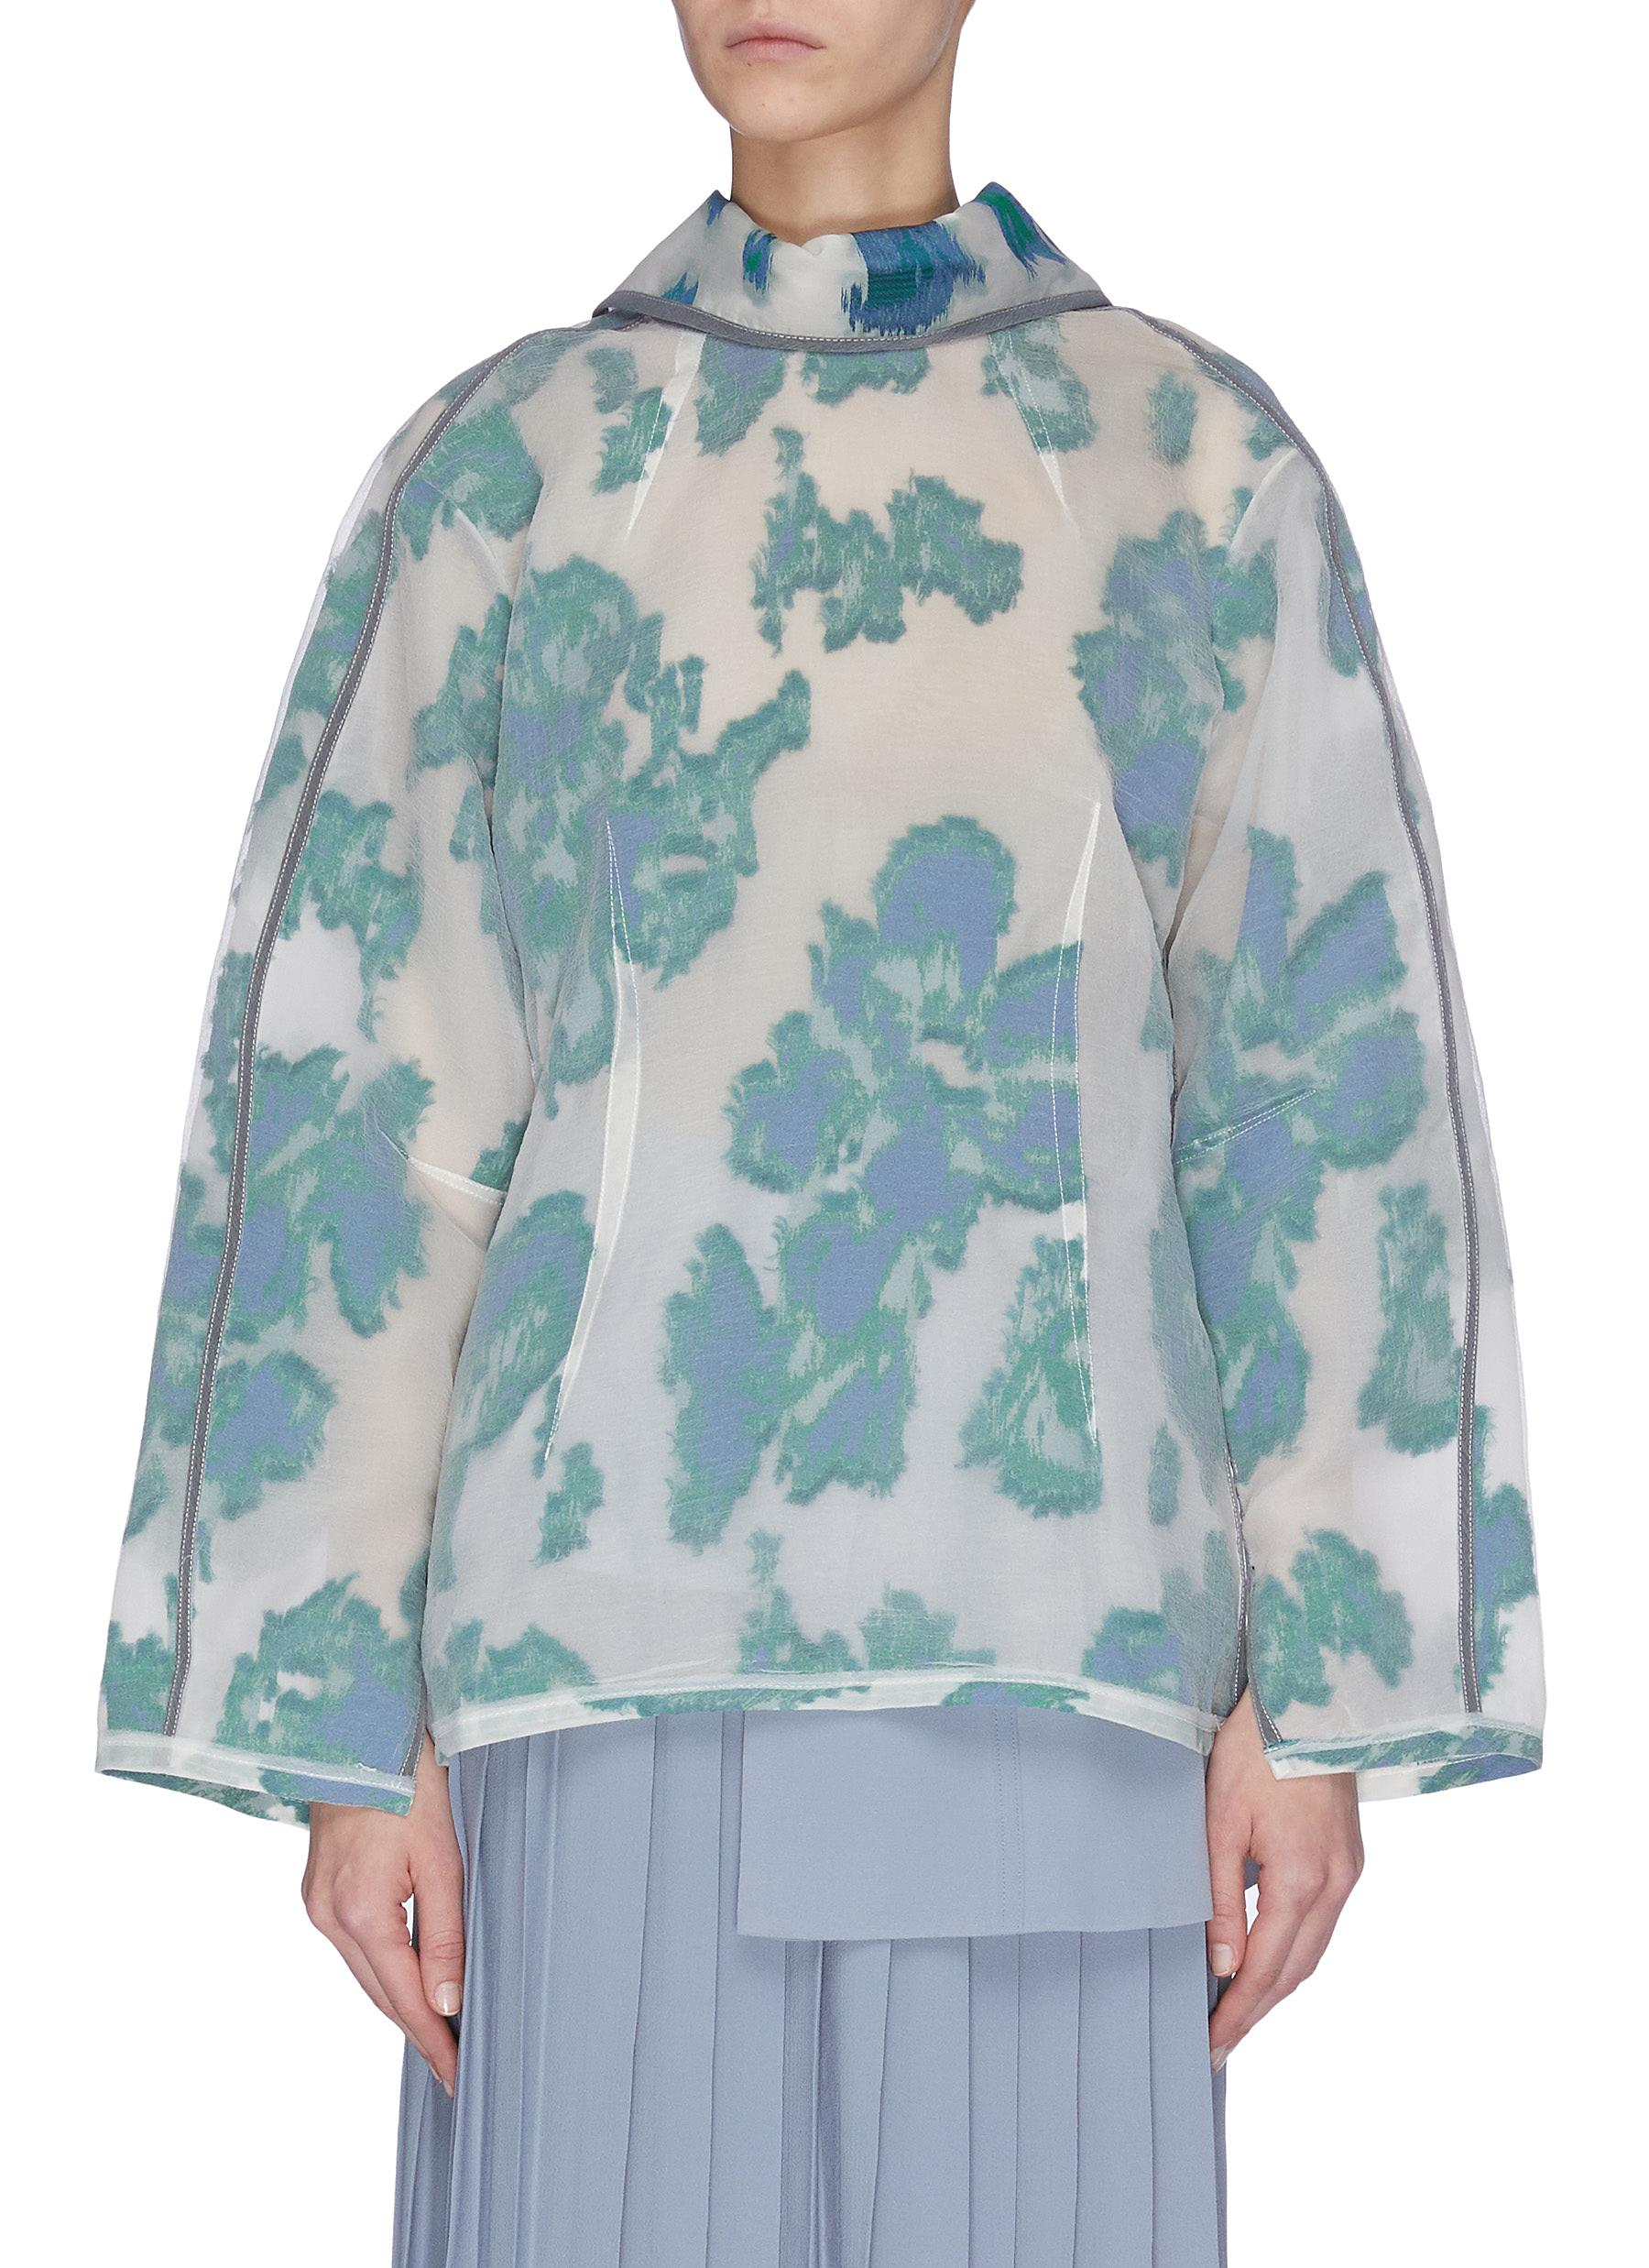 Buy 3.1 Phillip Lim Tops 'Abstract Daisy' mock neck top